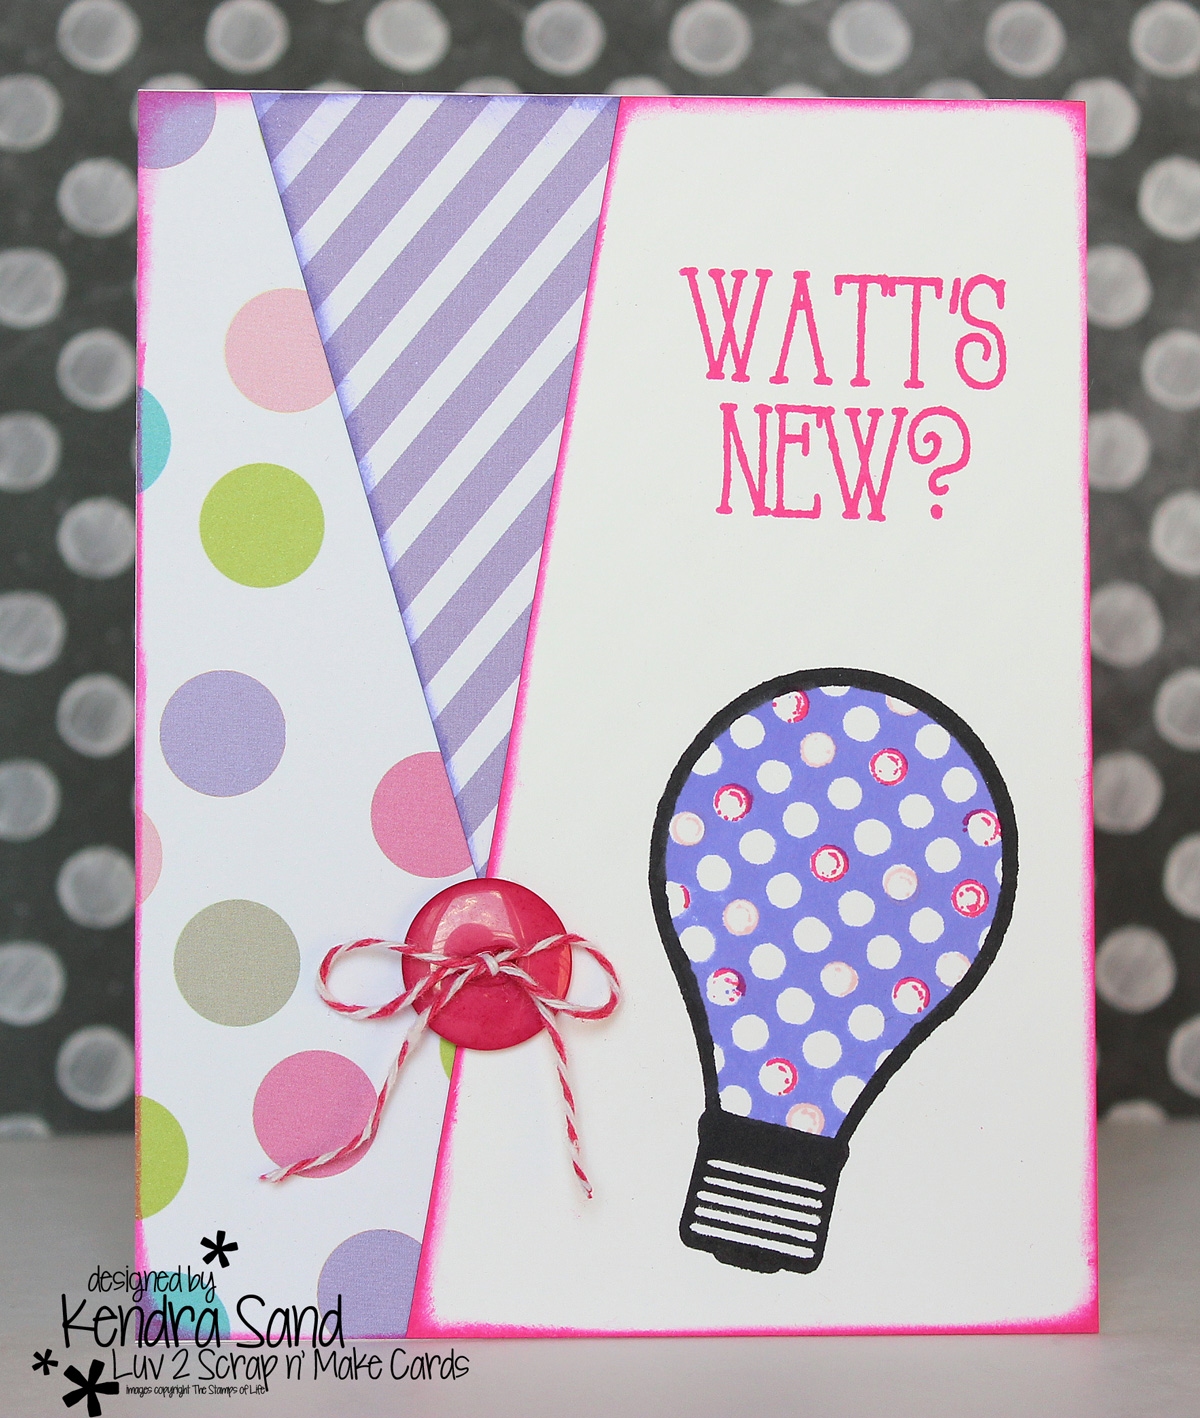 Luv 2 Scrap N' Make Cards: Watt's New? With The Stamps Of Life